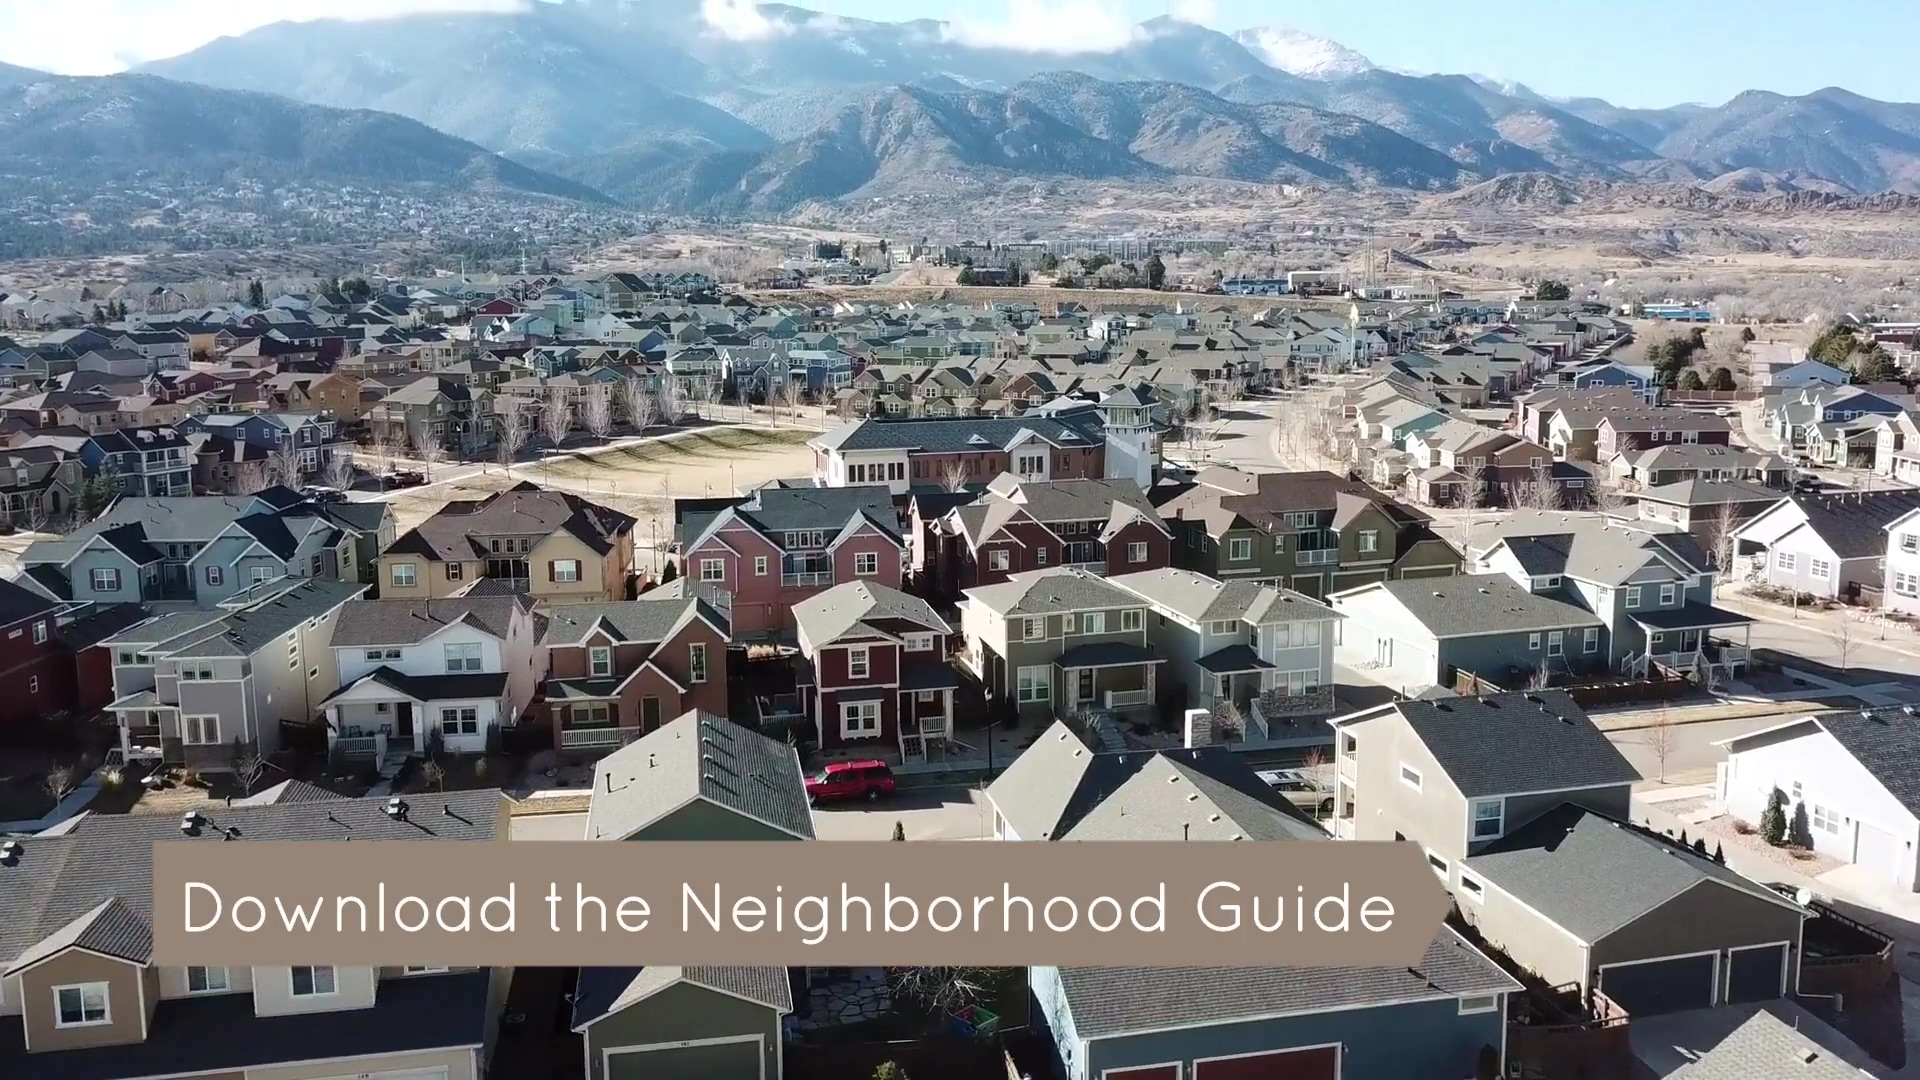 Neighborhood Guide FB Ad